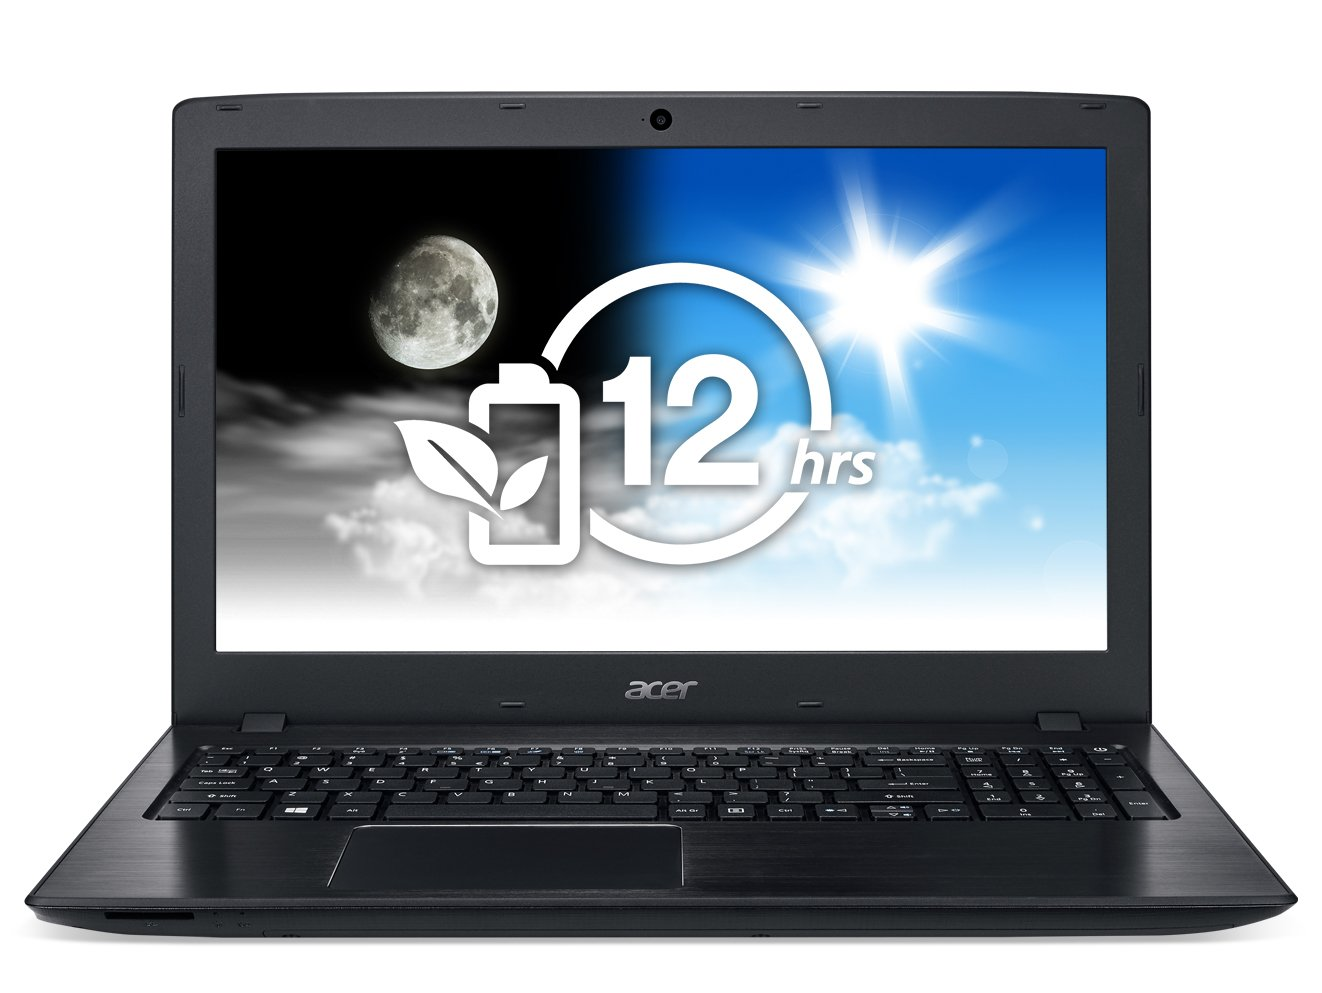 Acer Aspire E 15 E5-575G-75MD Review